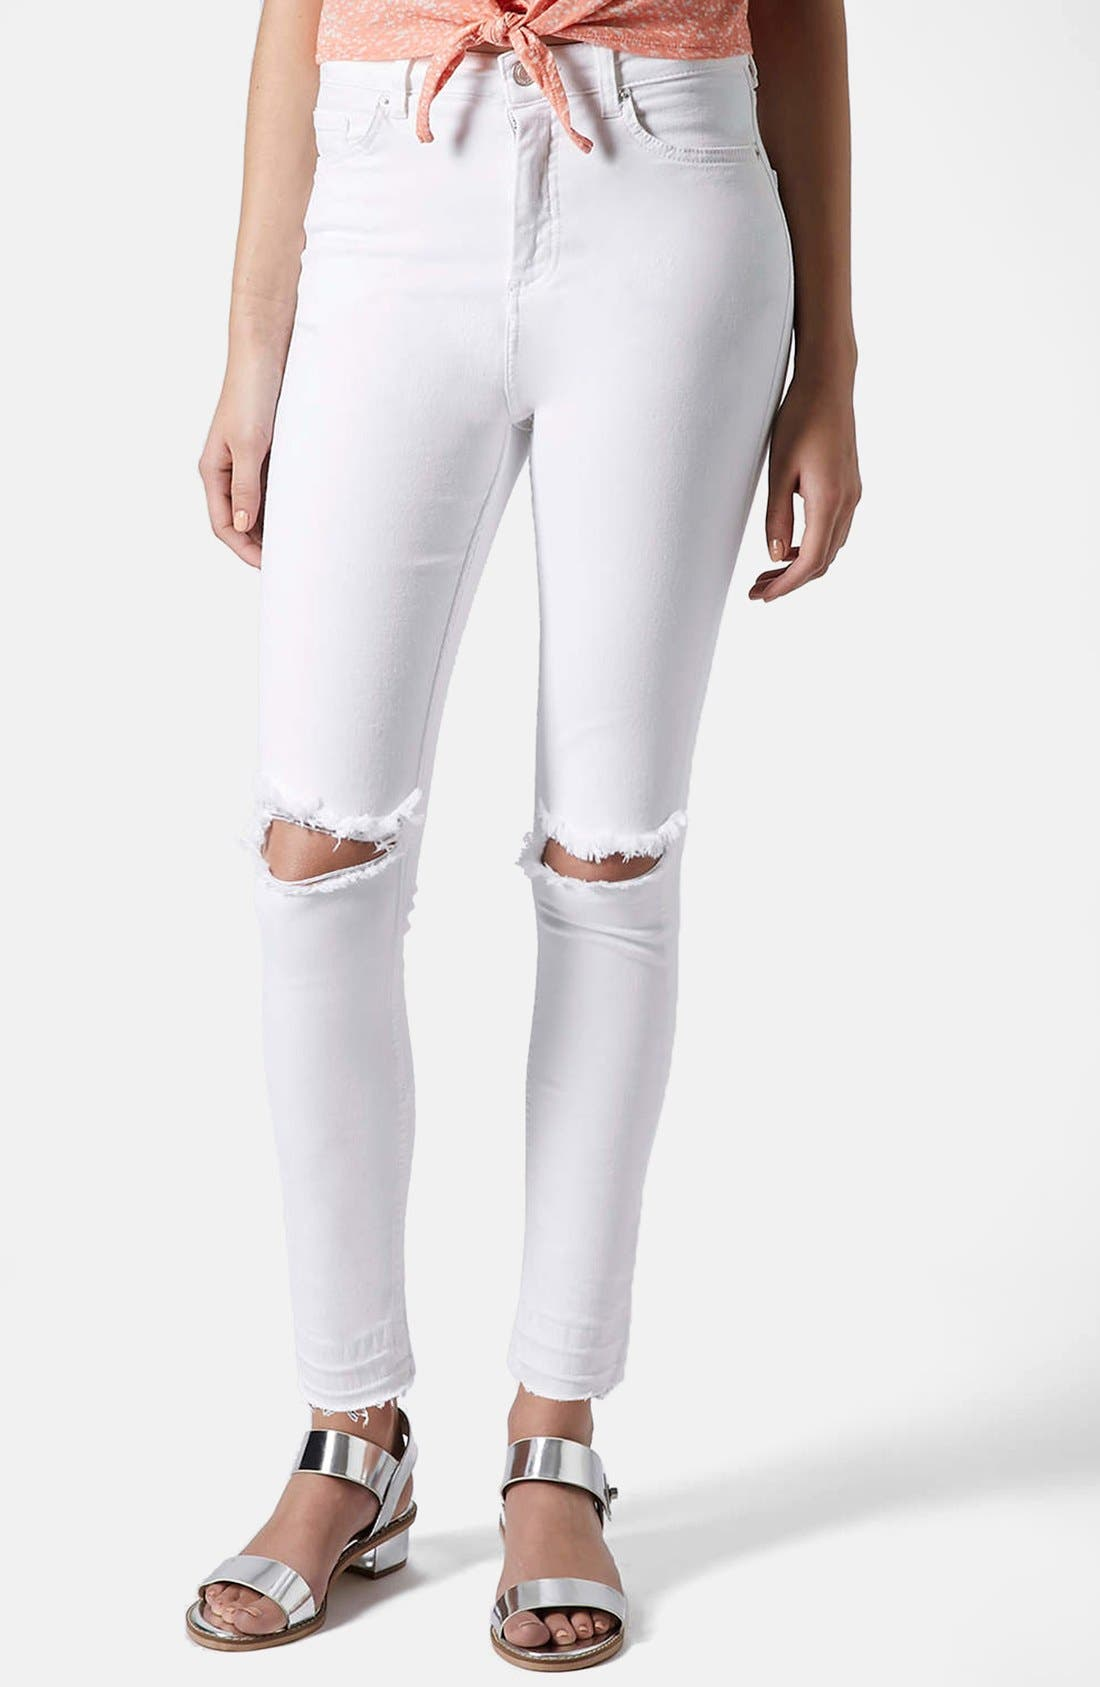 Alternate Image 1 Selected - Topshop Moto 'Jamie' Ripped High Rise Ankle Skinny Jeans (White) (Regular & Short)